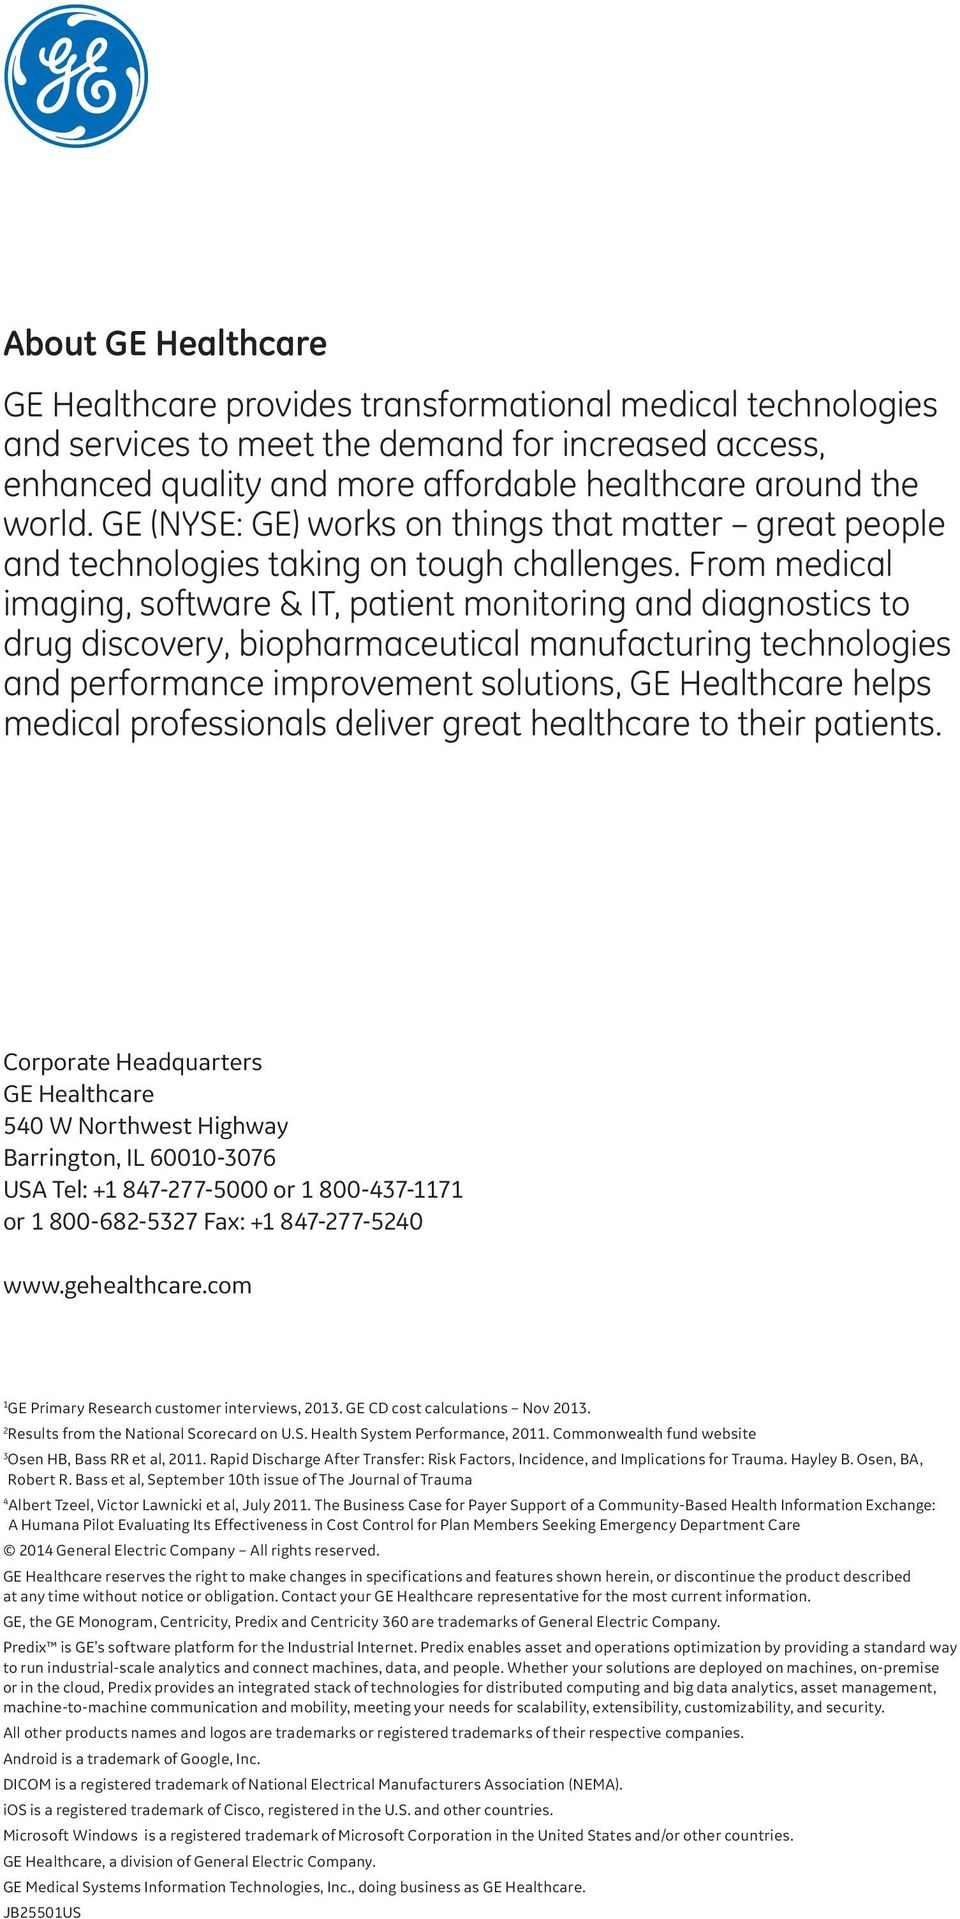 From medical imaging, software & IT, patient monitoring and diagnostics to drug discovery, biopharmaceutical manufacturing technologies and performance improvement solutions, GE Healthcare helps